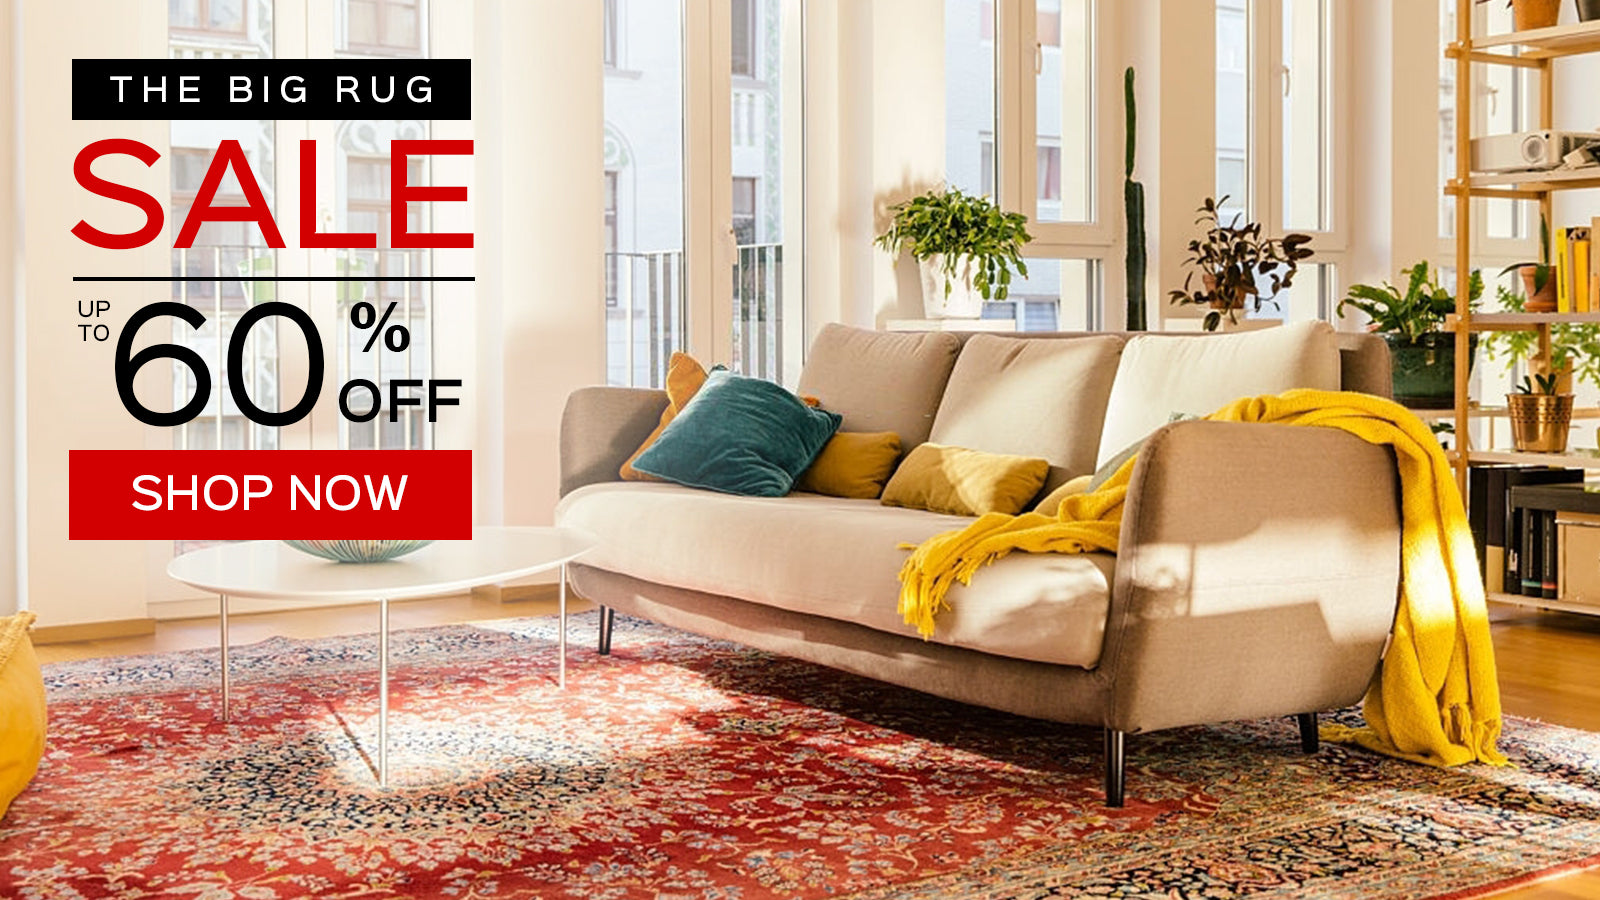 Red Persian Rug | The Big Rug Sale | 60% OFF